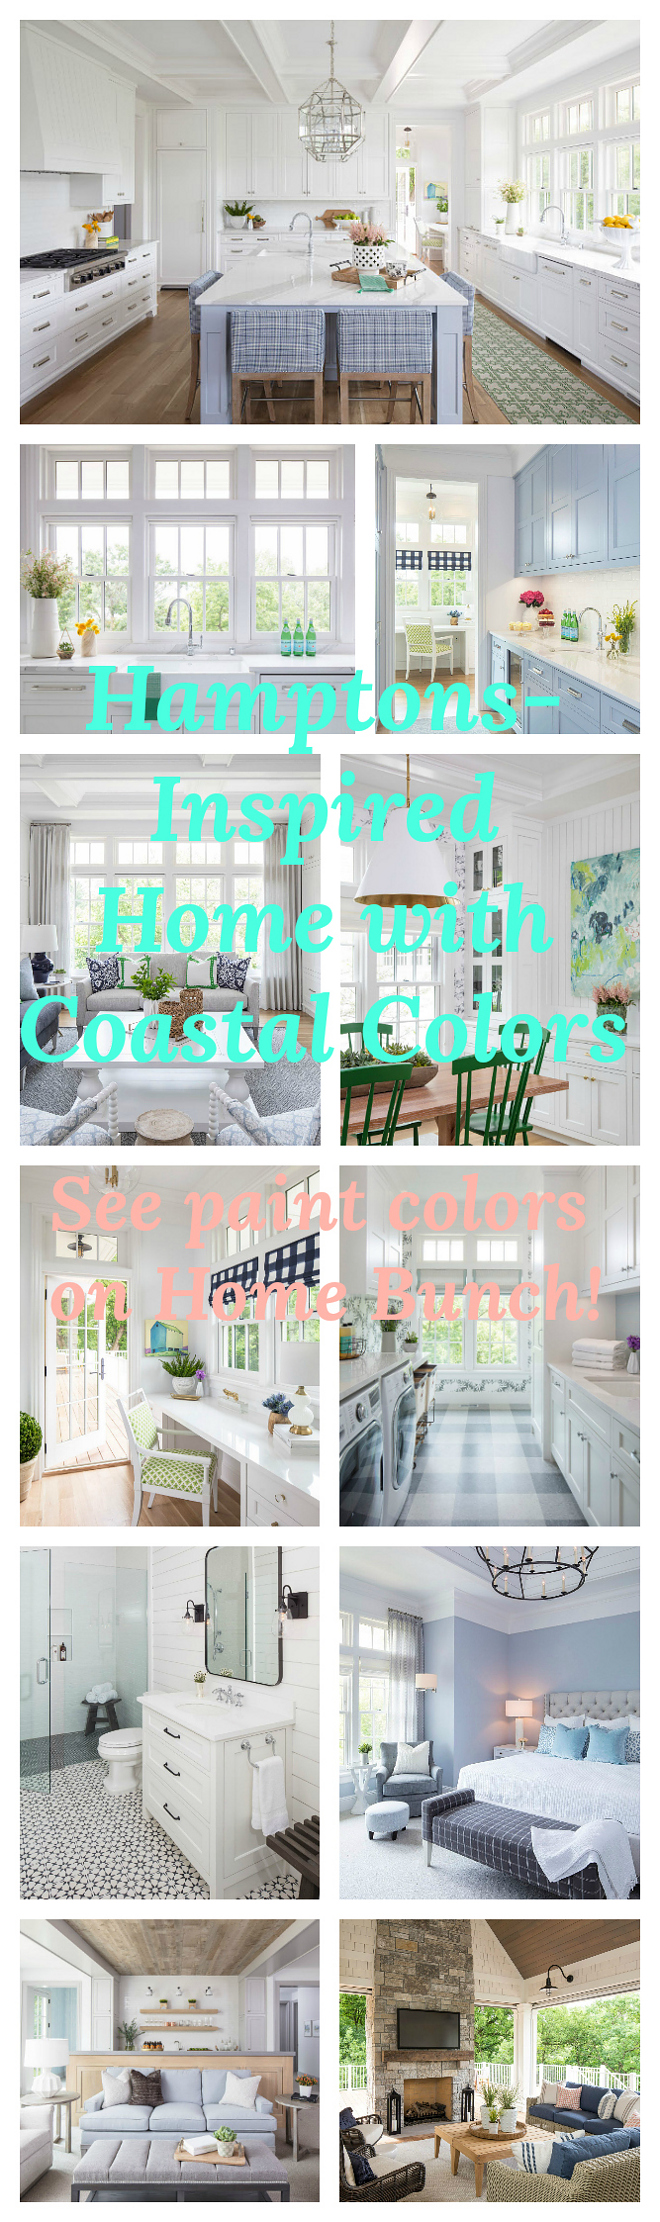 Hamptons-Inspired Home with Coastal Colors. See decor, lighting, furniture and paint color sources on Home Bunch. Hamptons-Inspired Home with Coastal Colors. Hamptons-Inspired Home with Coastal Colors. #HamptonsInspiredHome #CoastalColors Home Bunch